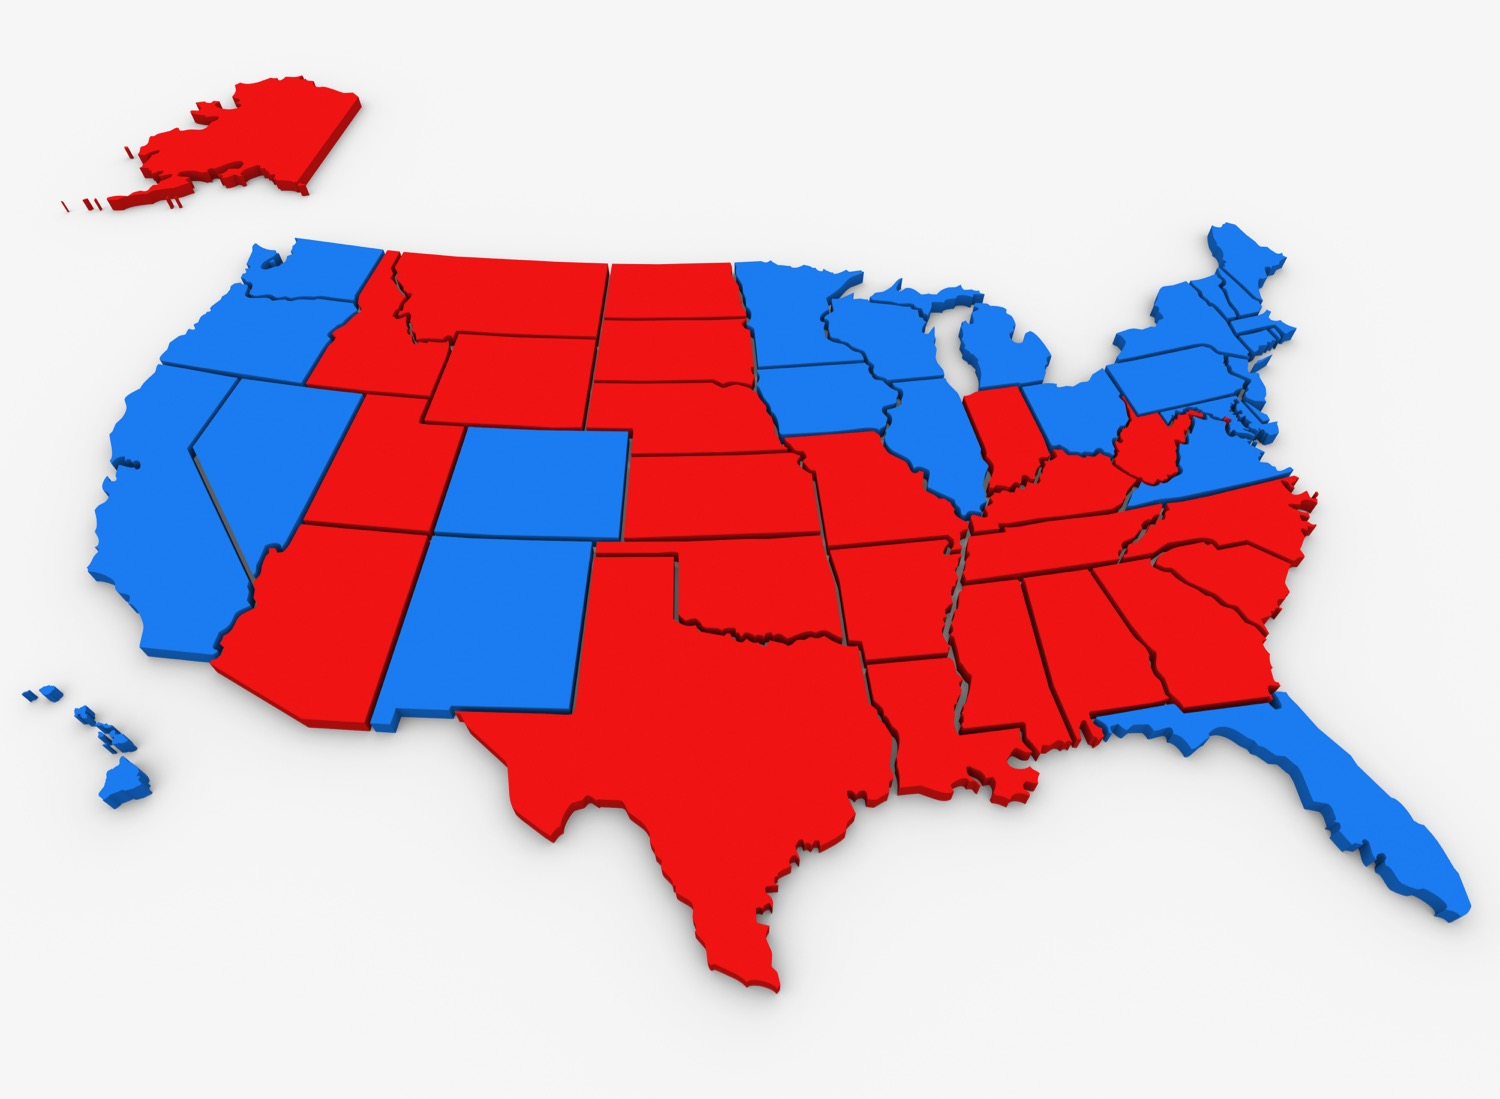 Red Vs Blue United States America Map Presidential Election.jpg